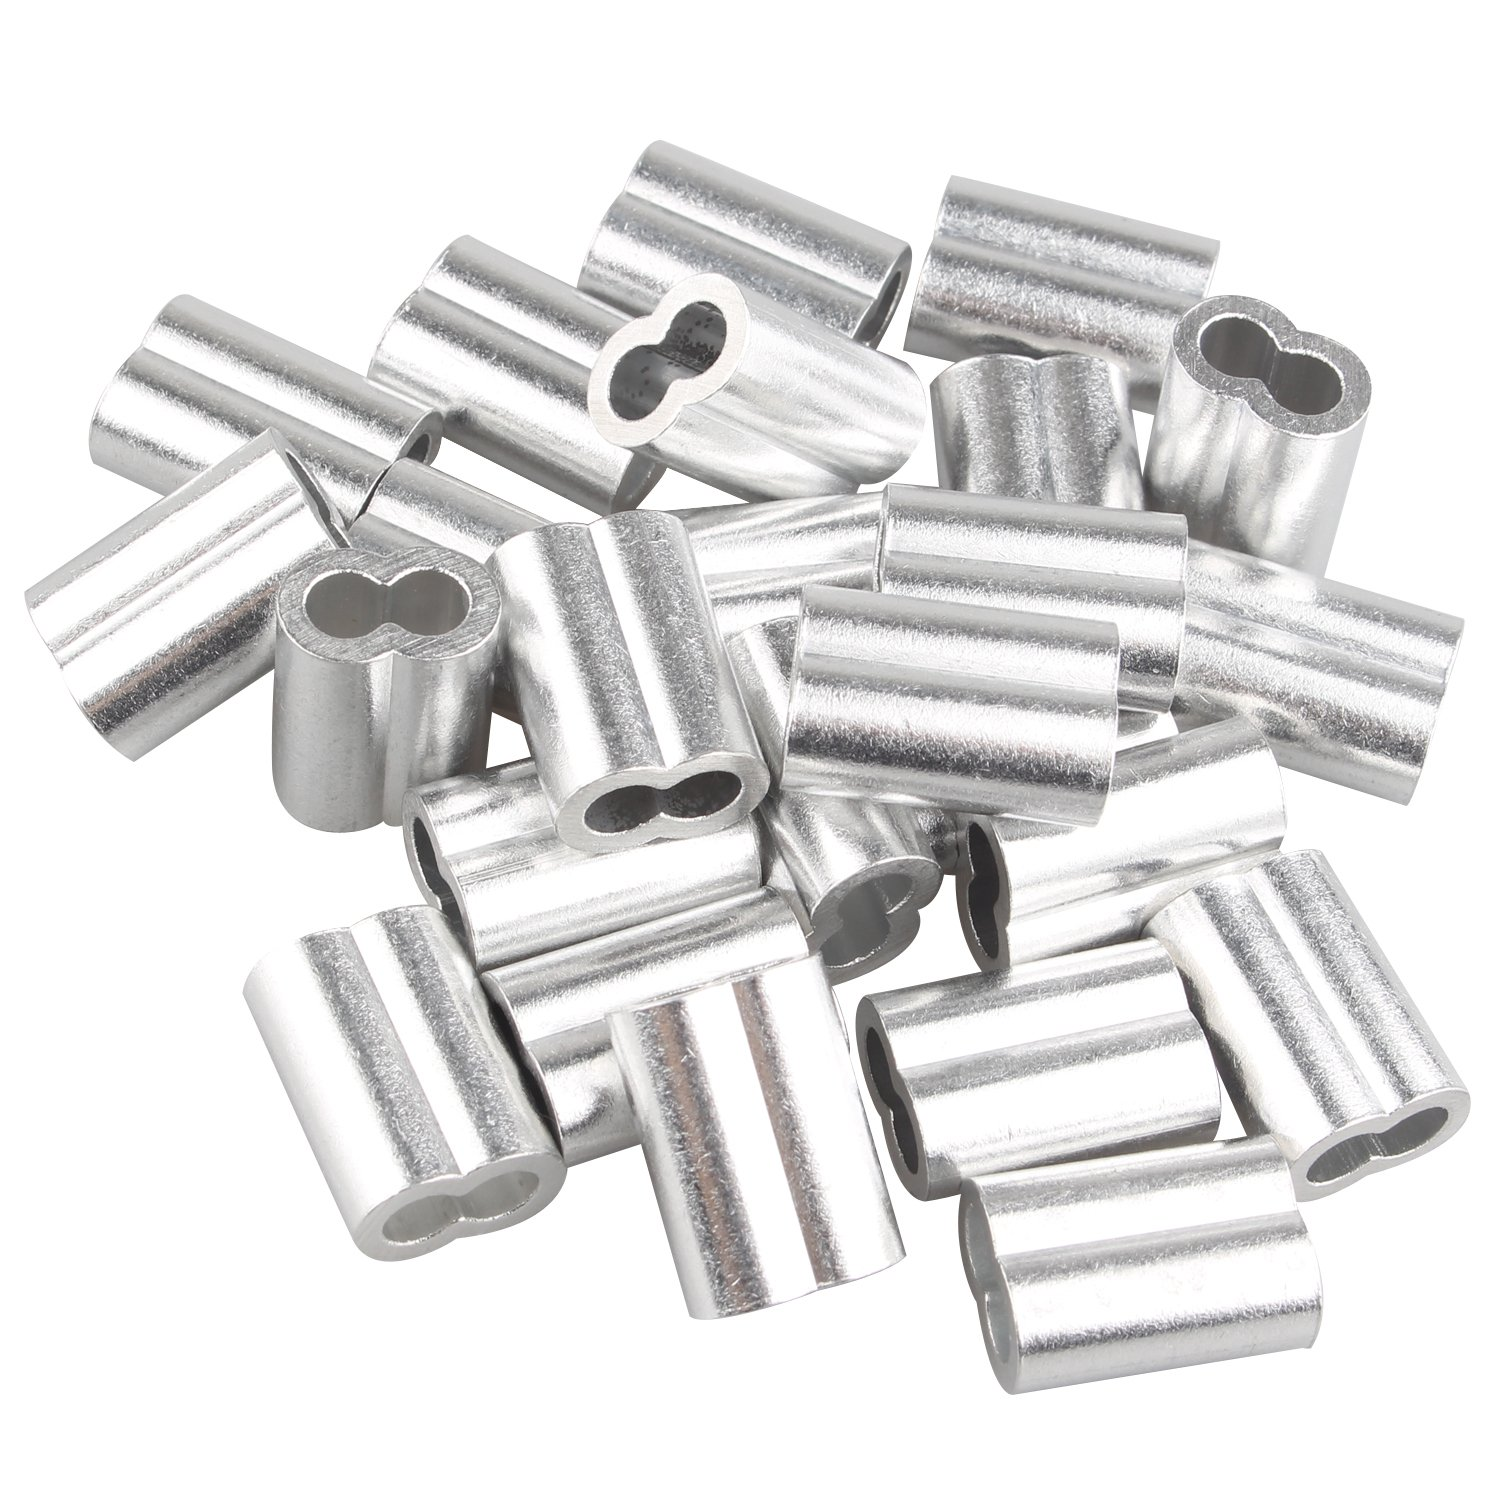 25 pcs Aluminum Crimping Loop Sleeve Clips with Double Ferrules/Holes for 5.0mm Cable Wire Rope Silver Tone Fushengda